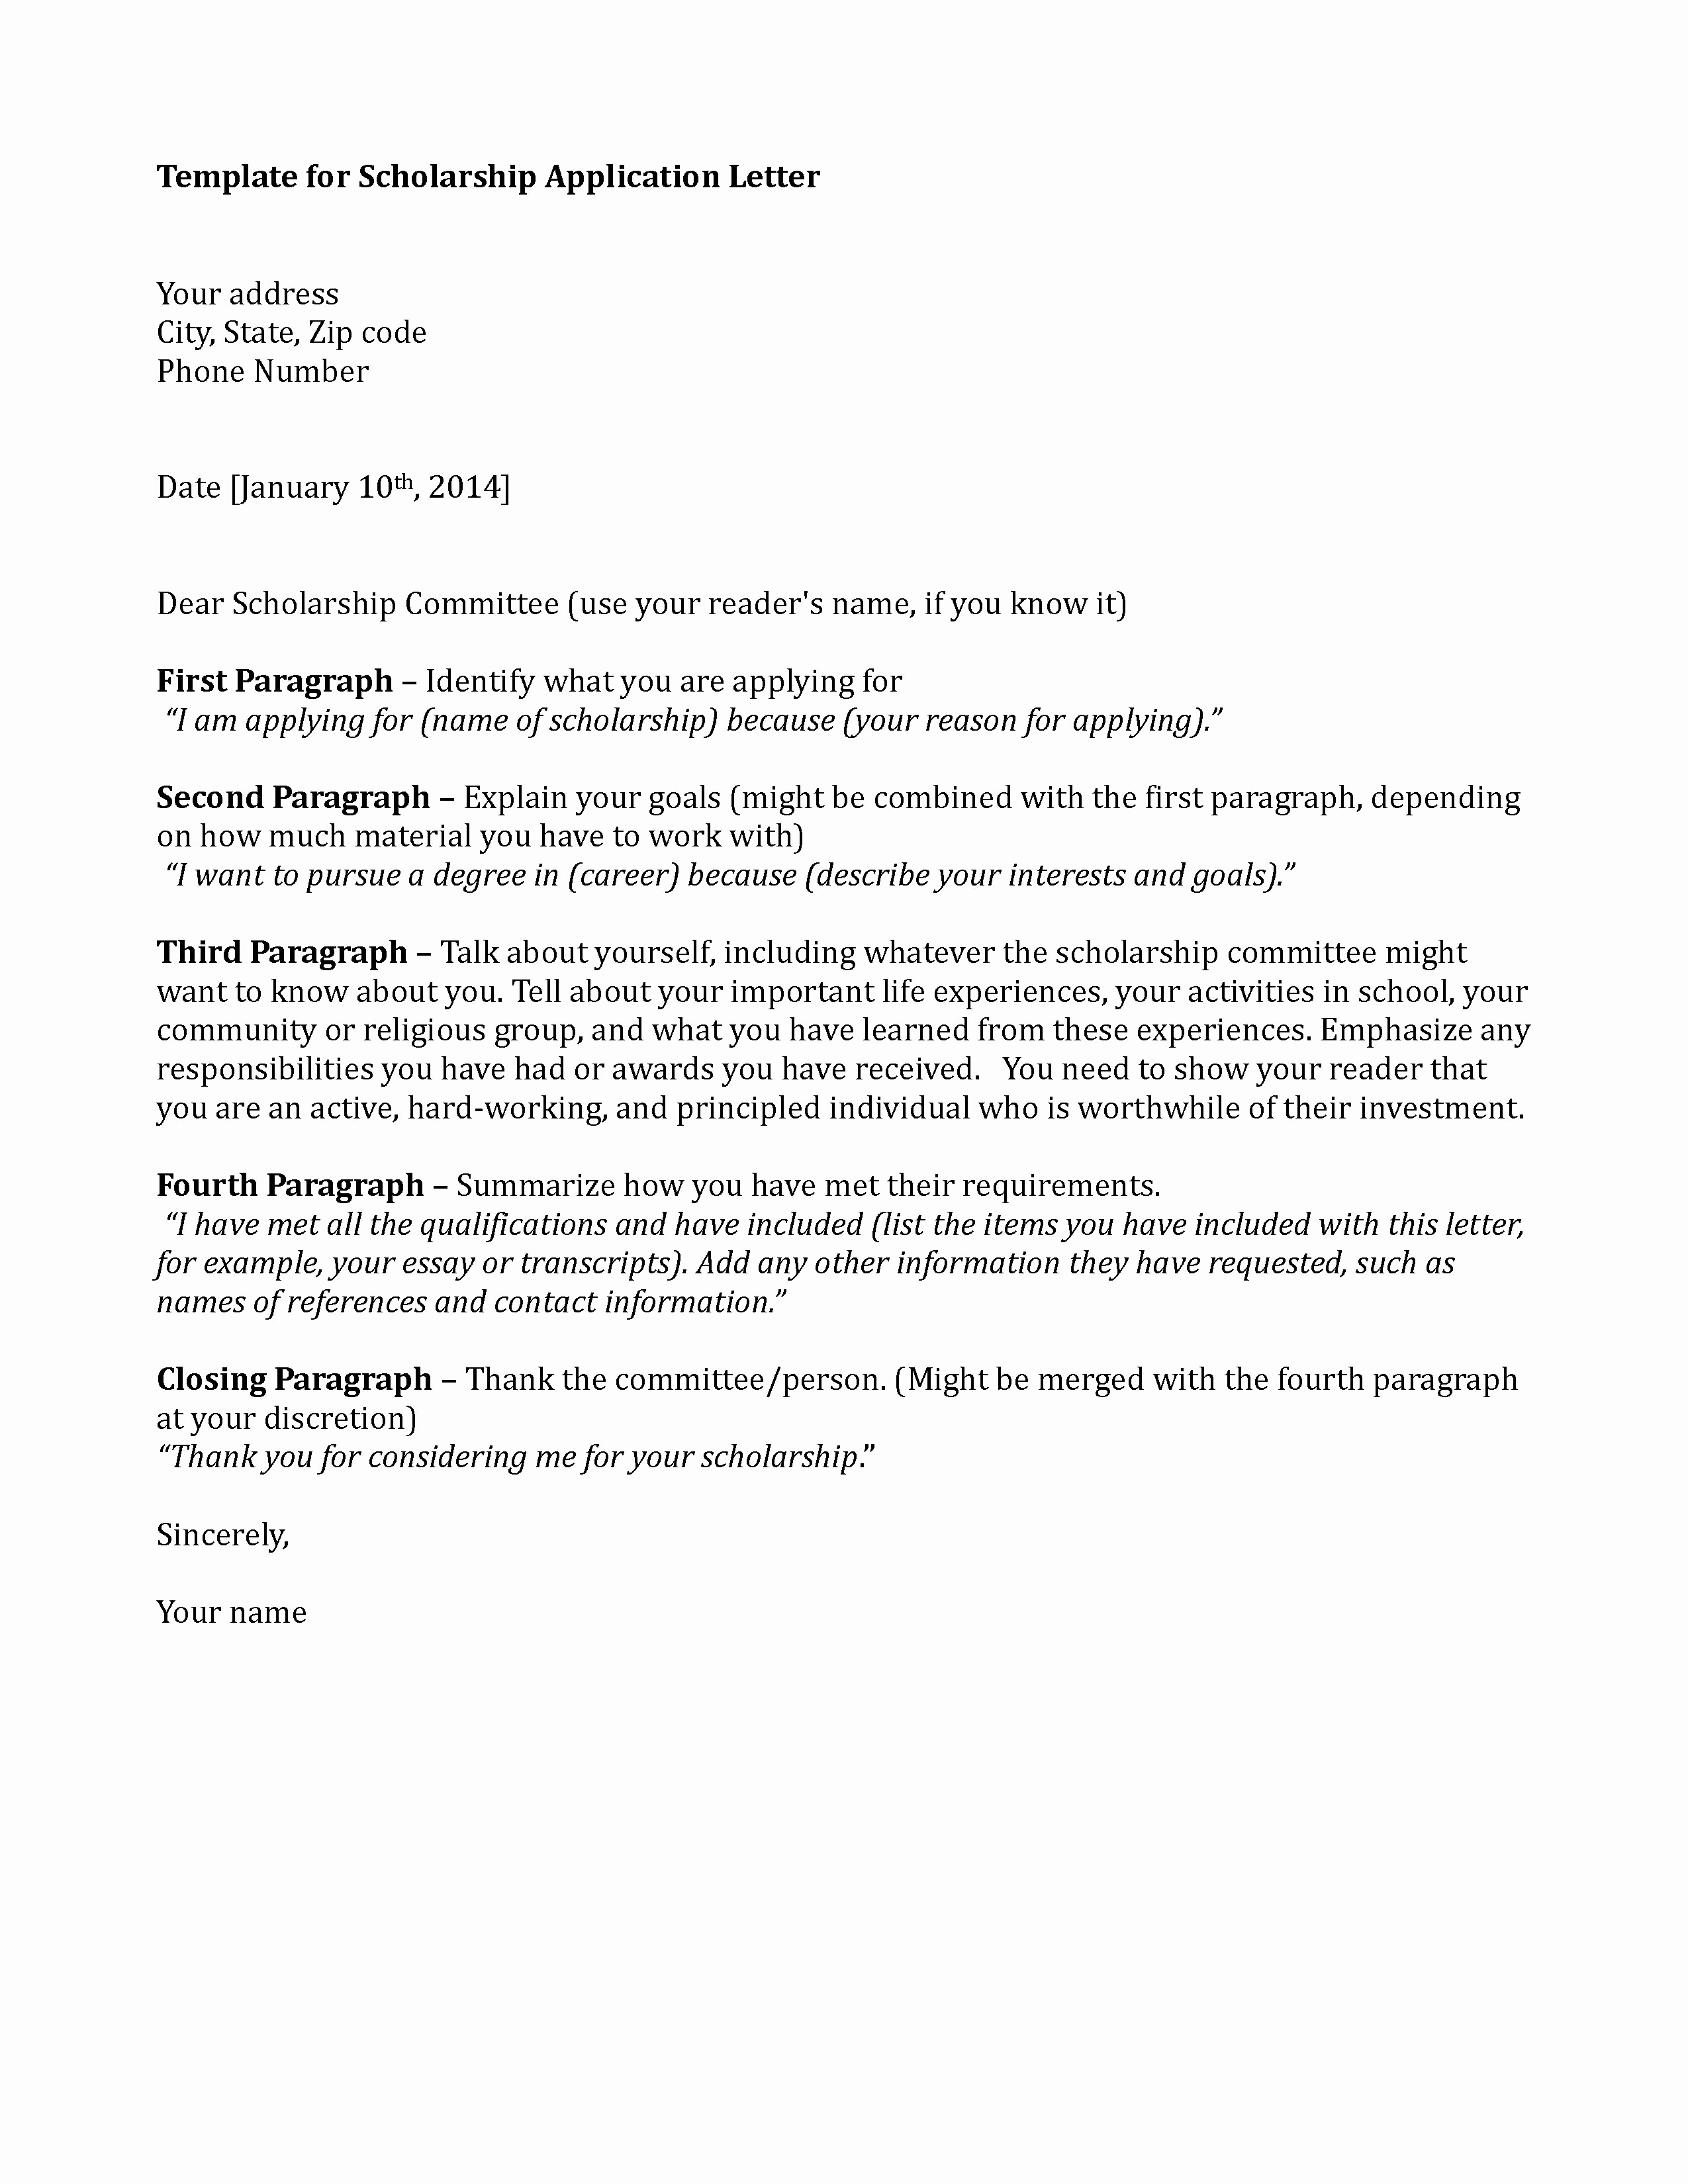 Letters Of Application Examples Luxury Scholarship Application Template Sample Application Letter